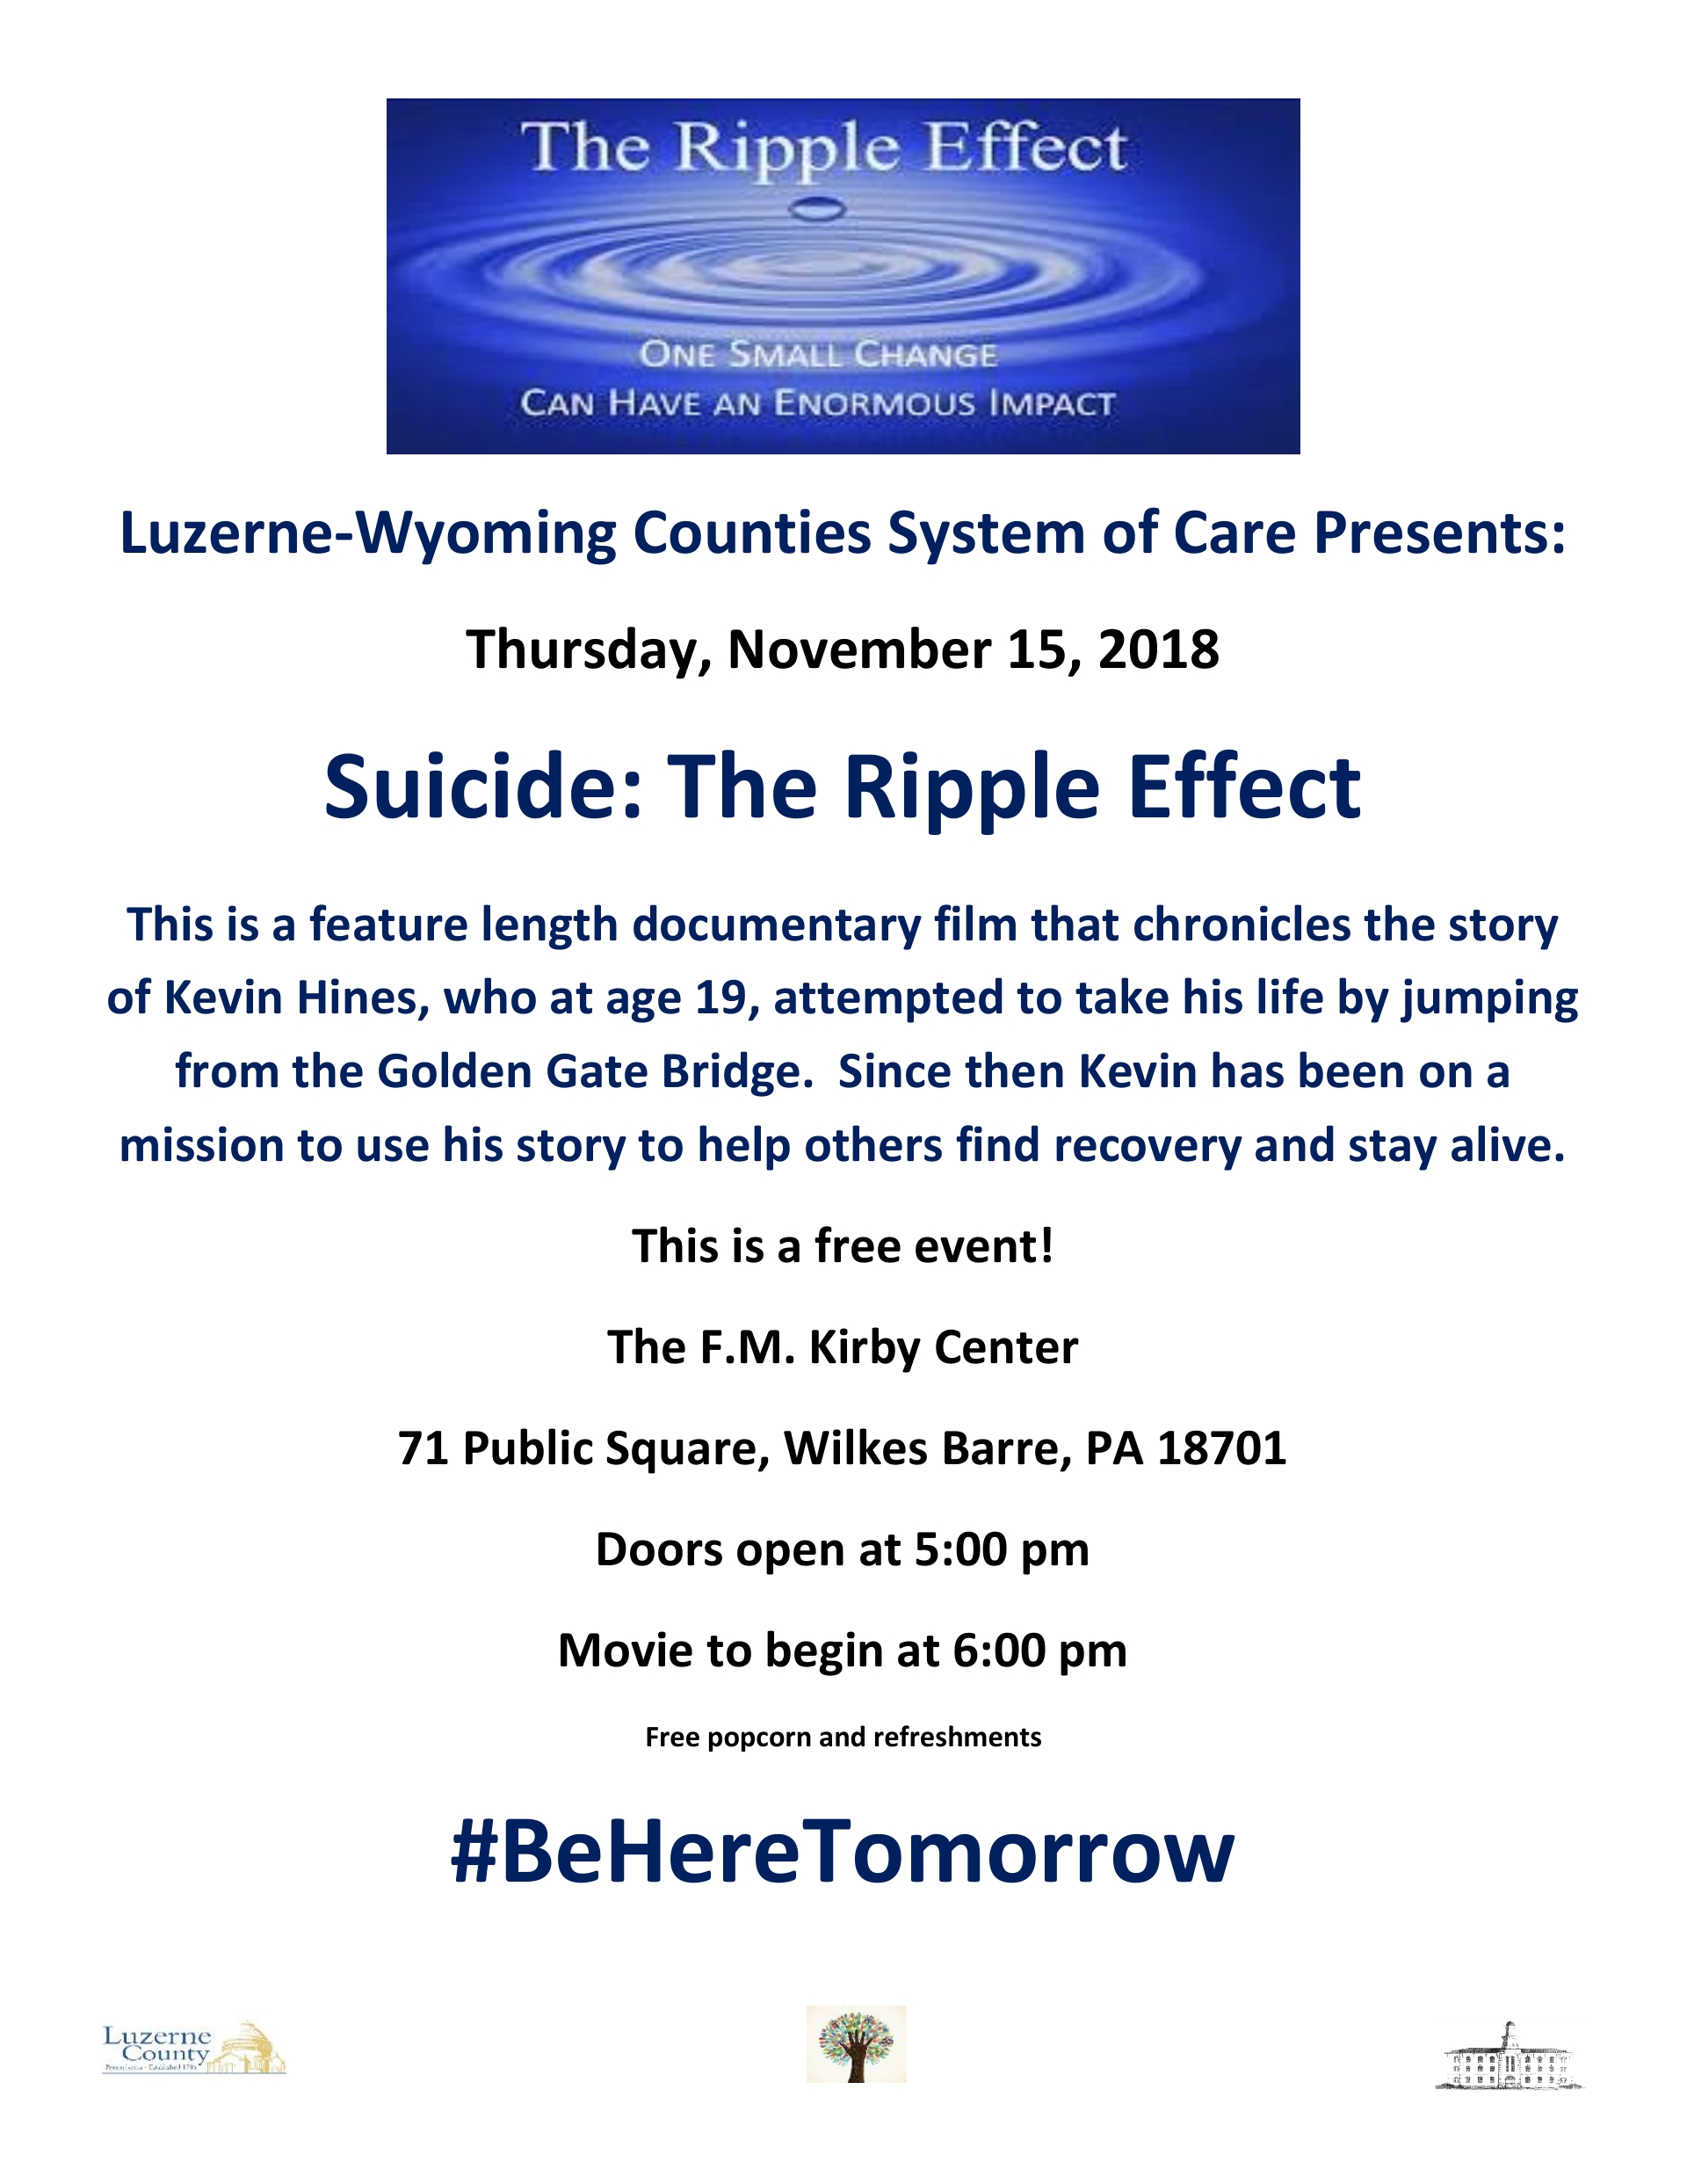 Suicide: The Ripple Effect Movie